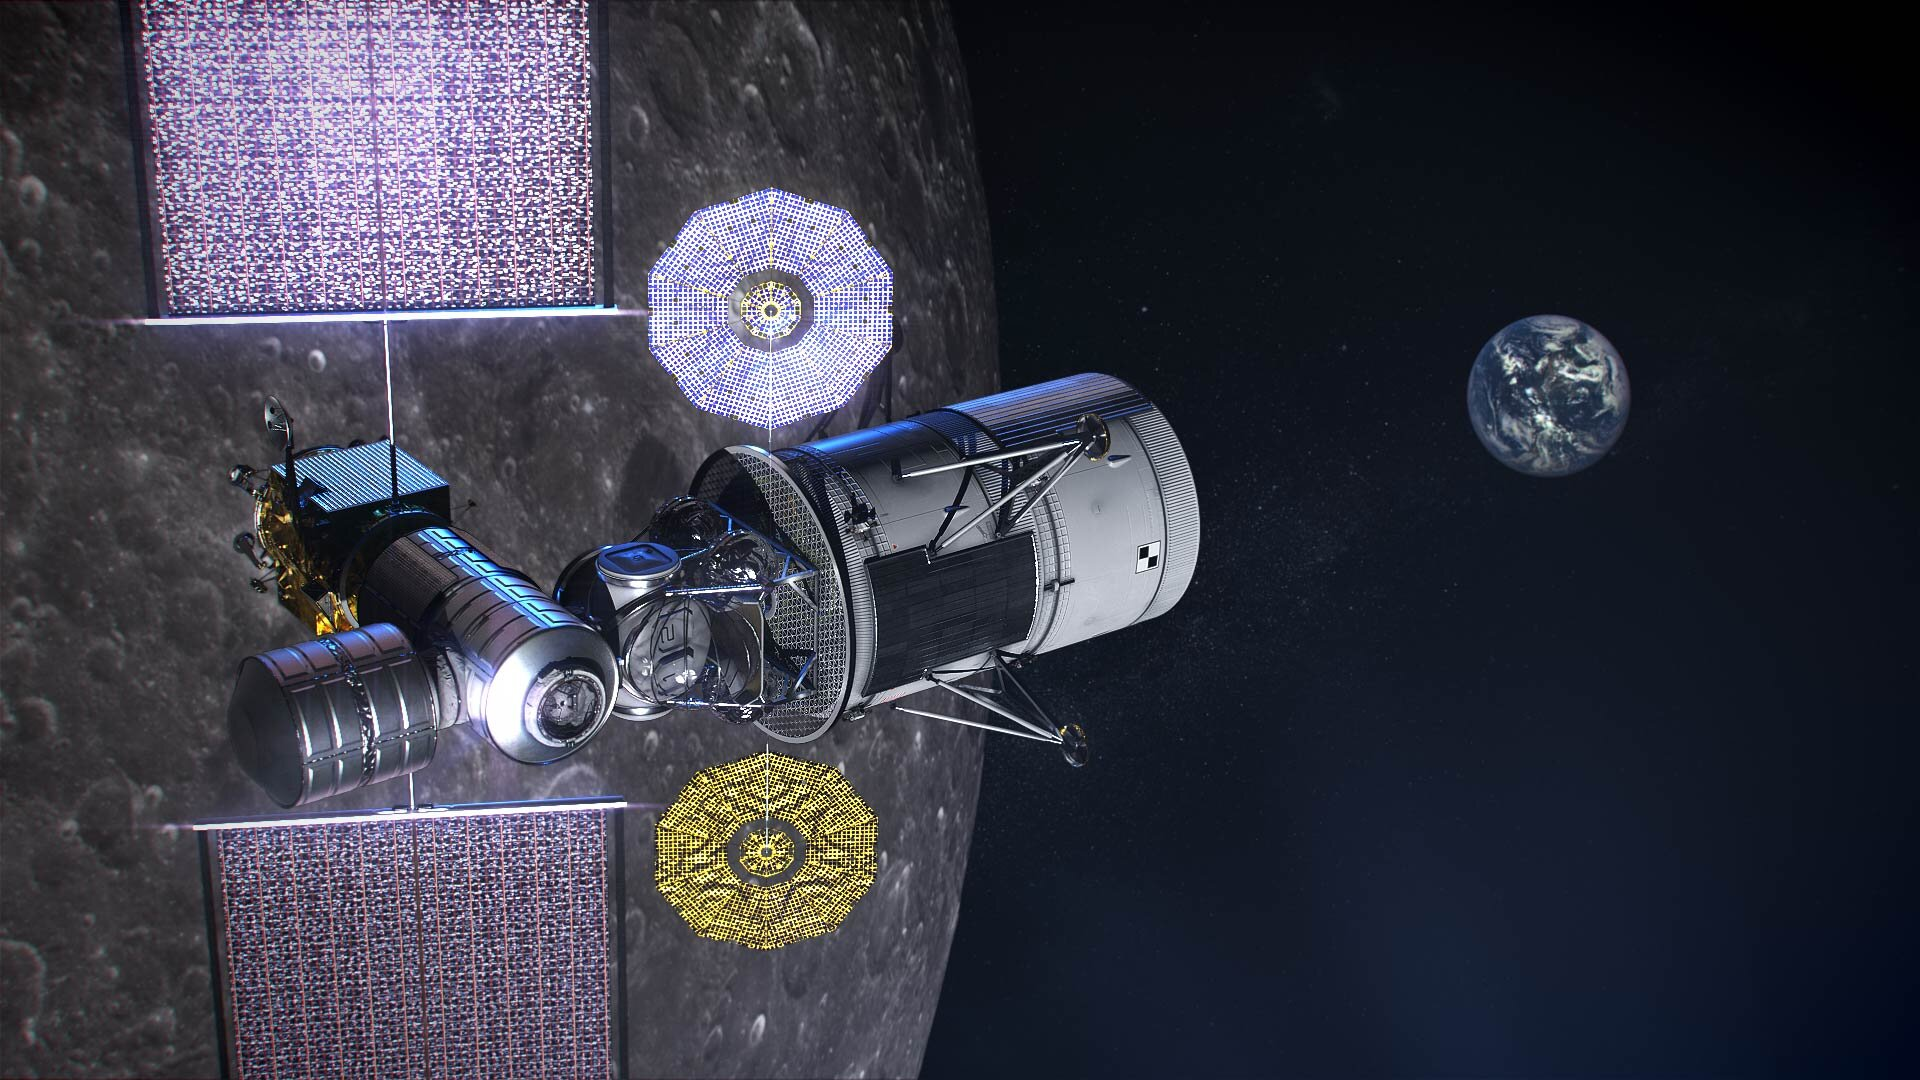 NASA engineers analyze navigation needs of Artemis moon missions